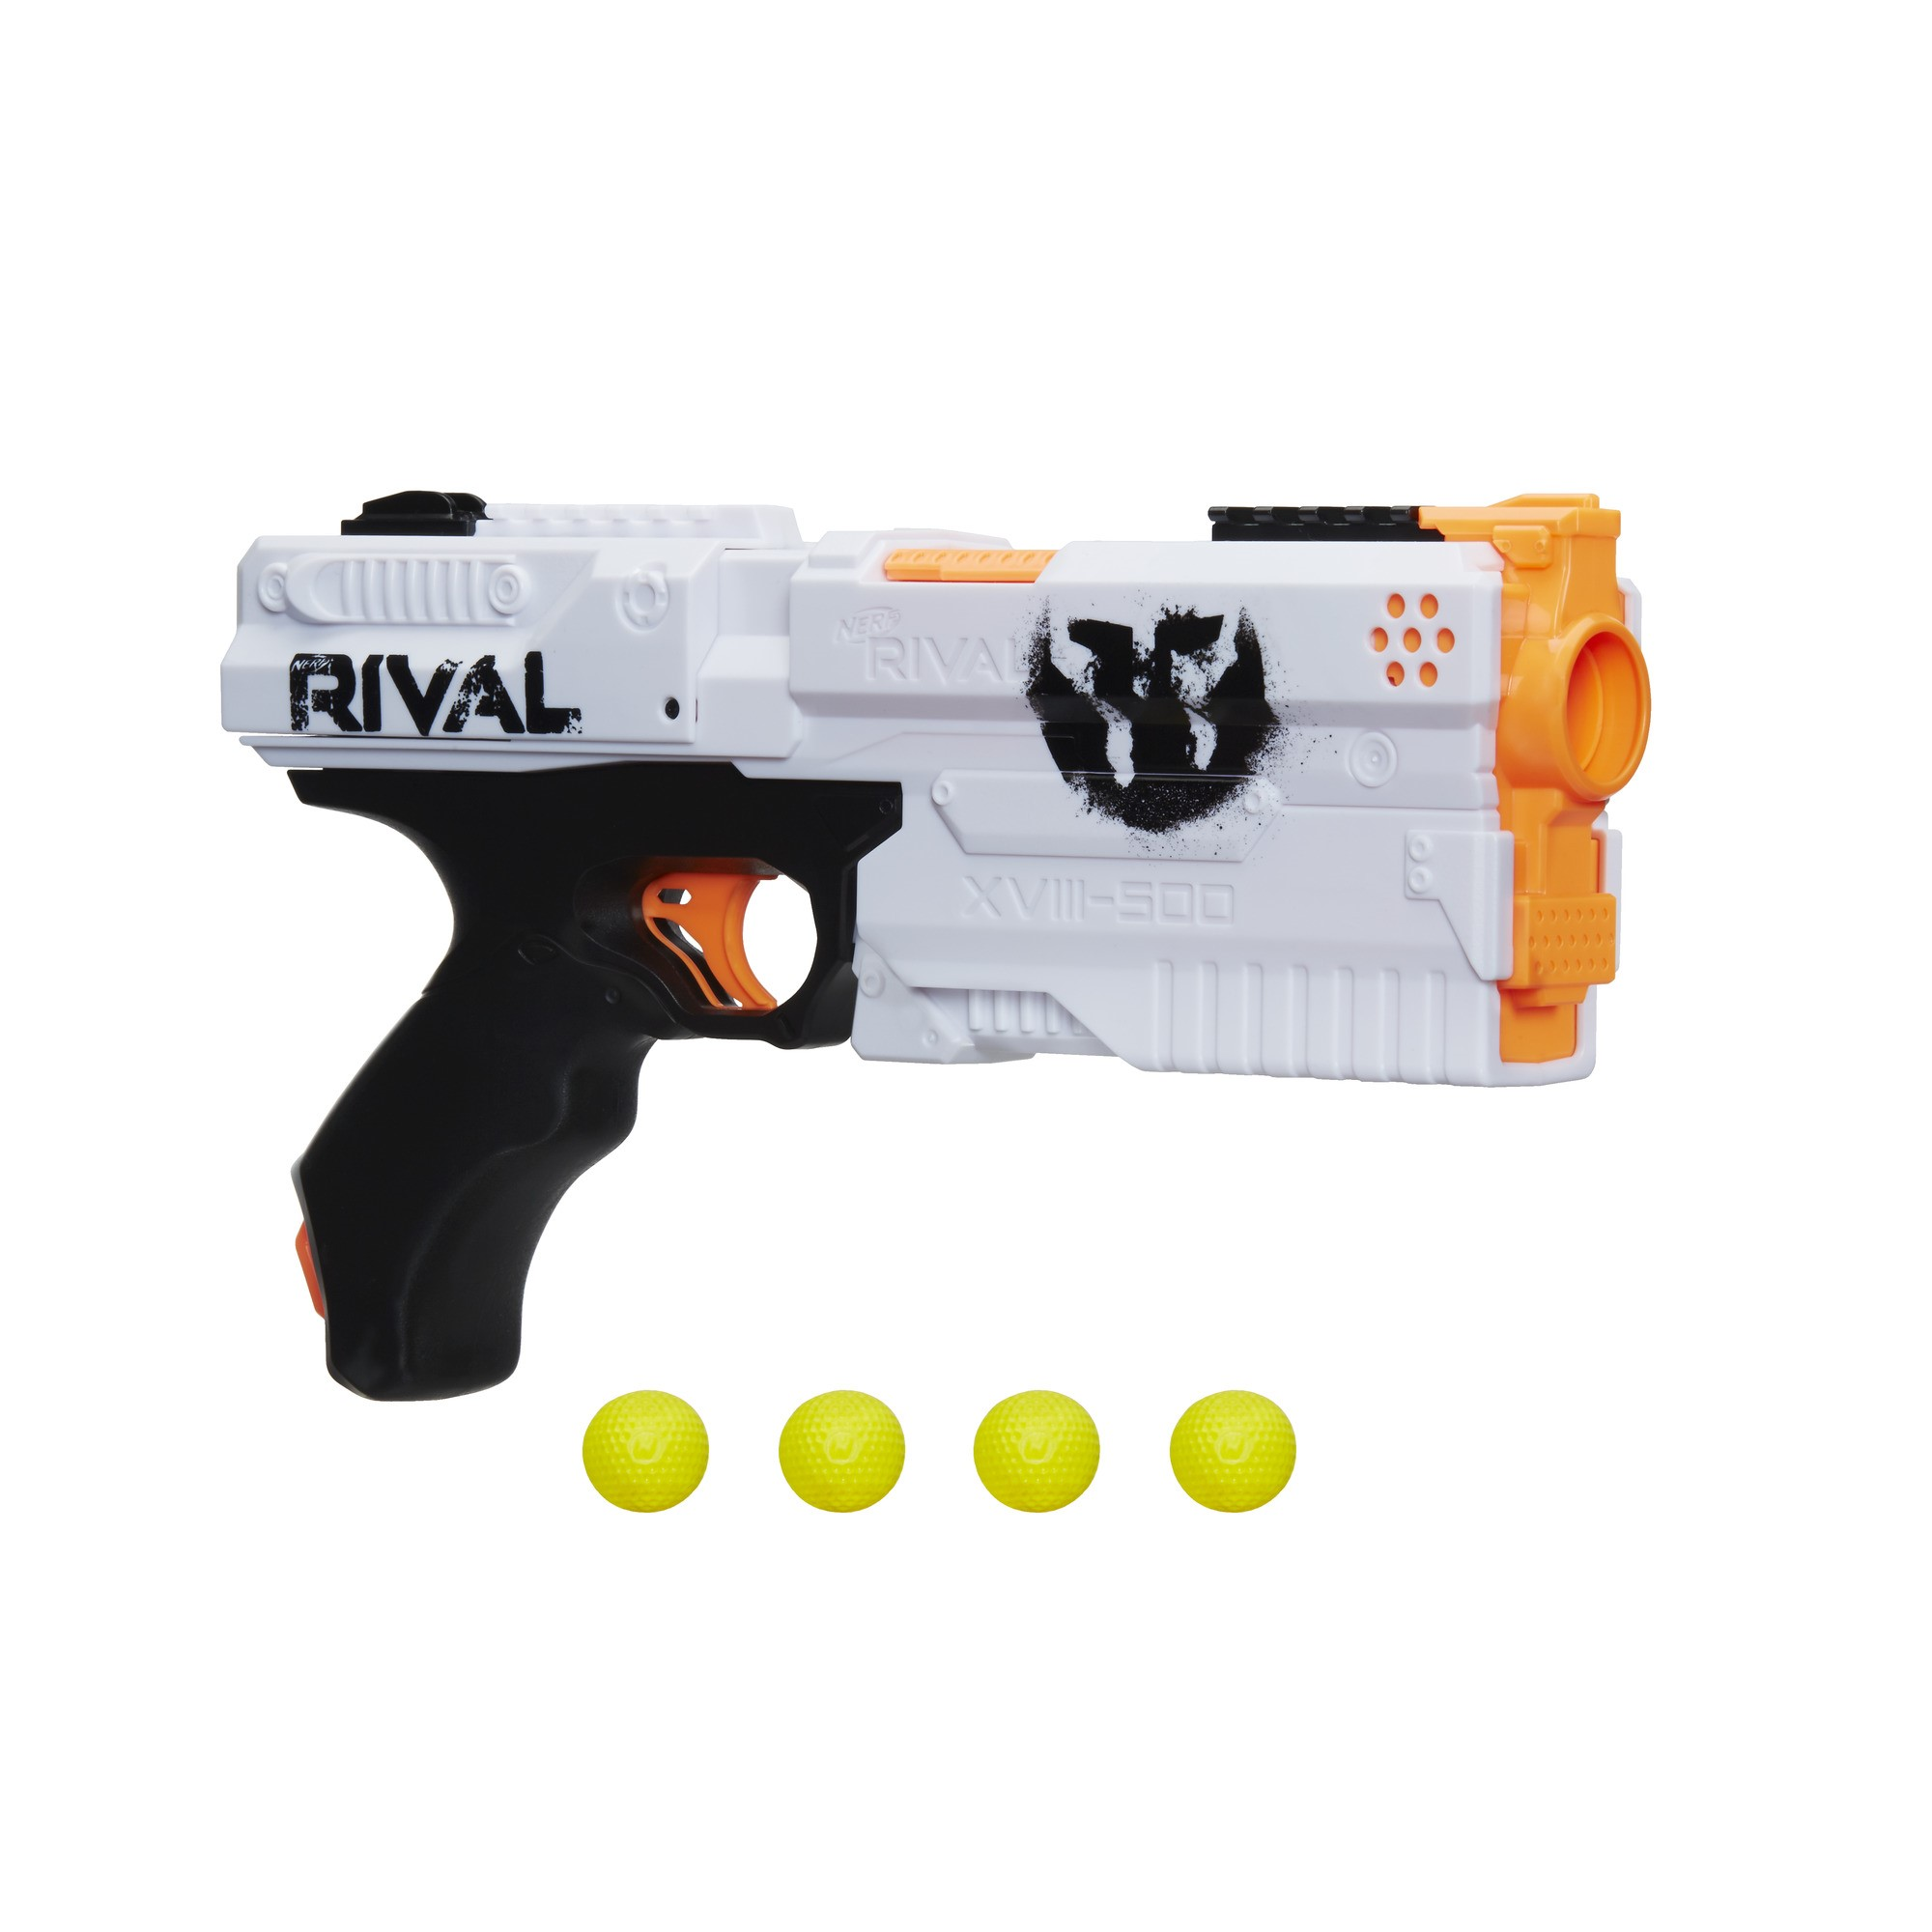 Nerf Rival Phantom Corps Kronos XVIII-500 Blaster with 5 Rival Rounds